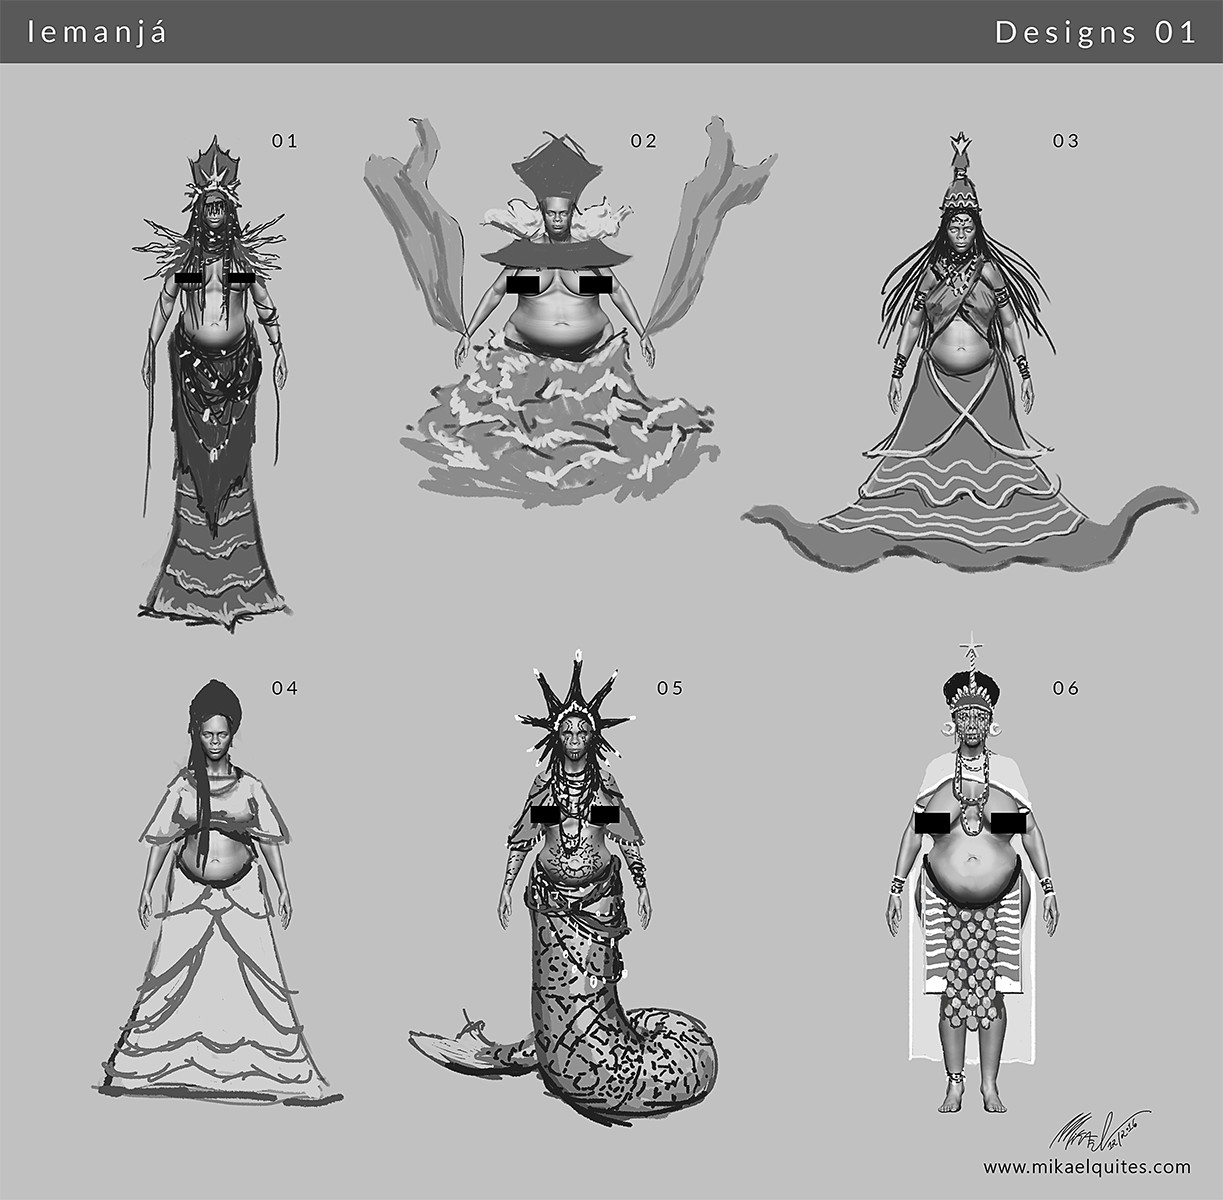 I did a good research, learning some important aspects of her: she is a mother, queen of the sea, sometimes called and depicted as a mermaid. Symbols: the waning moon, starfish, waves, pearls.